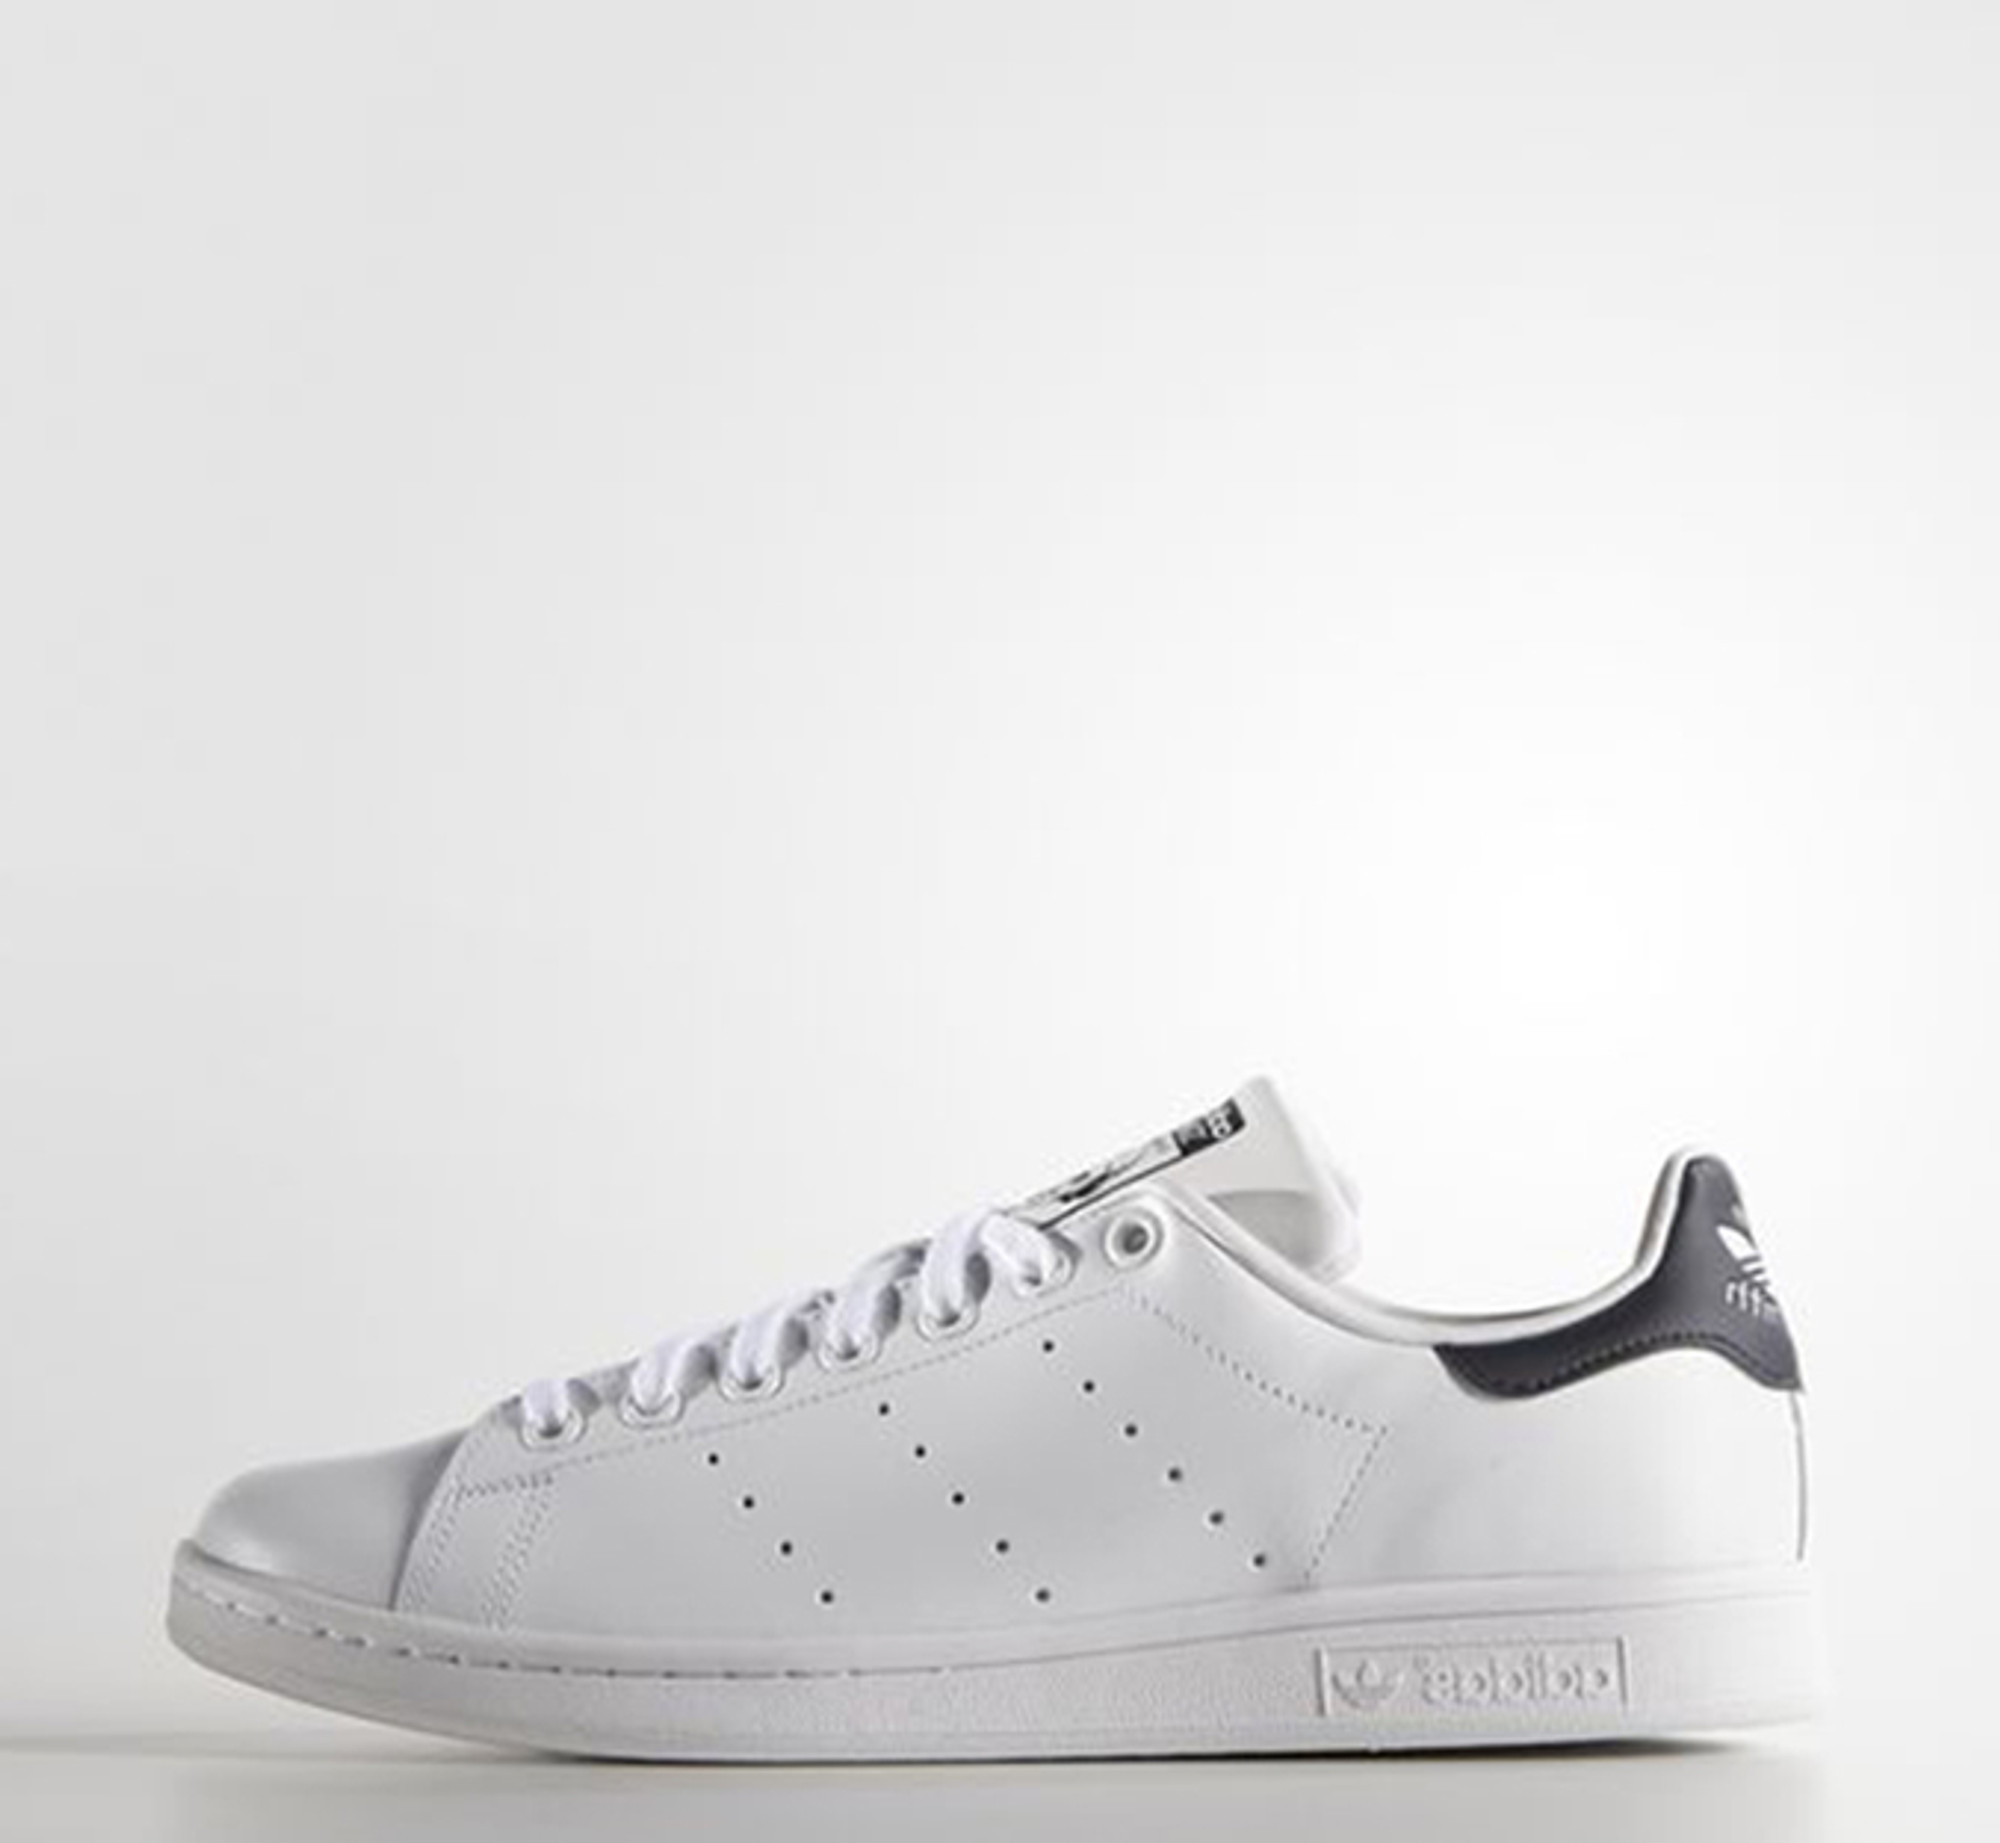 adidas stan smith mens white navy nz